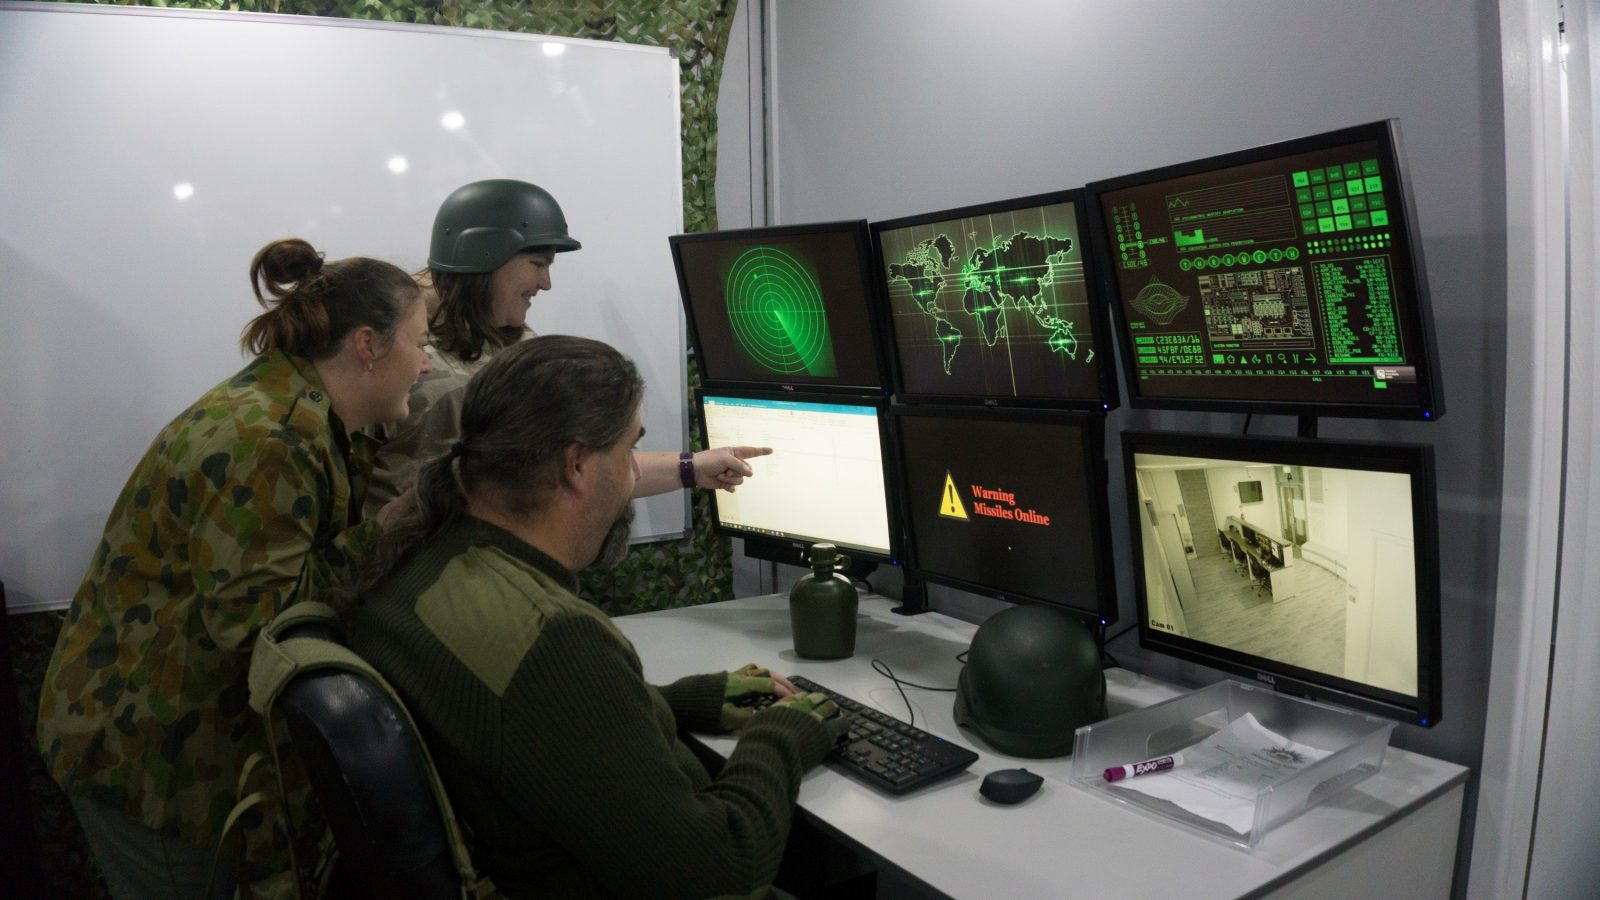 3 people dressed in army gear looking at 6 monitors